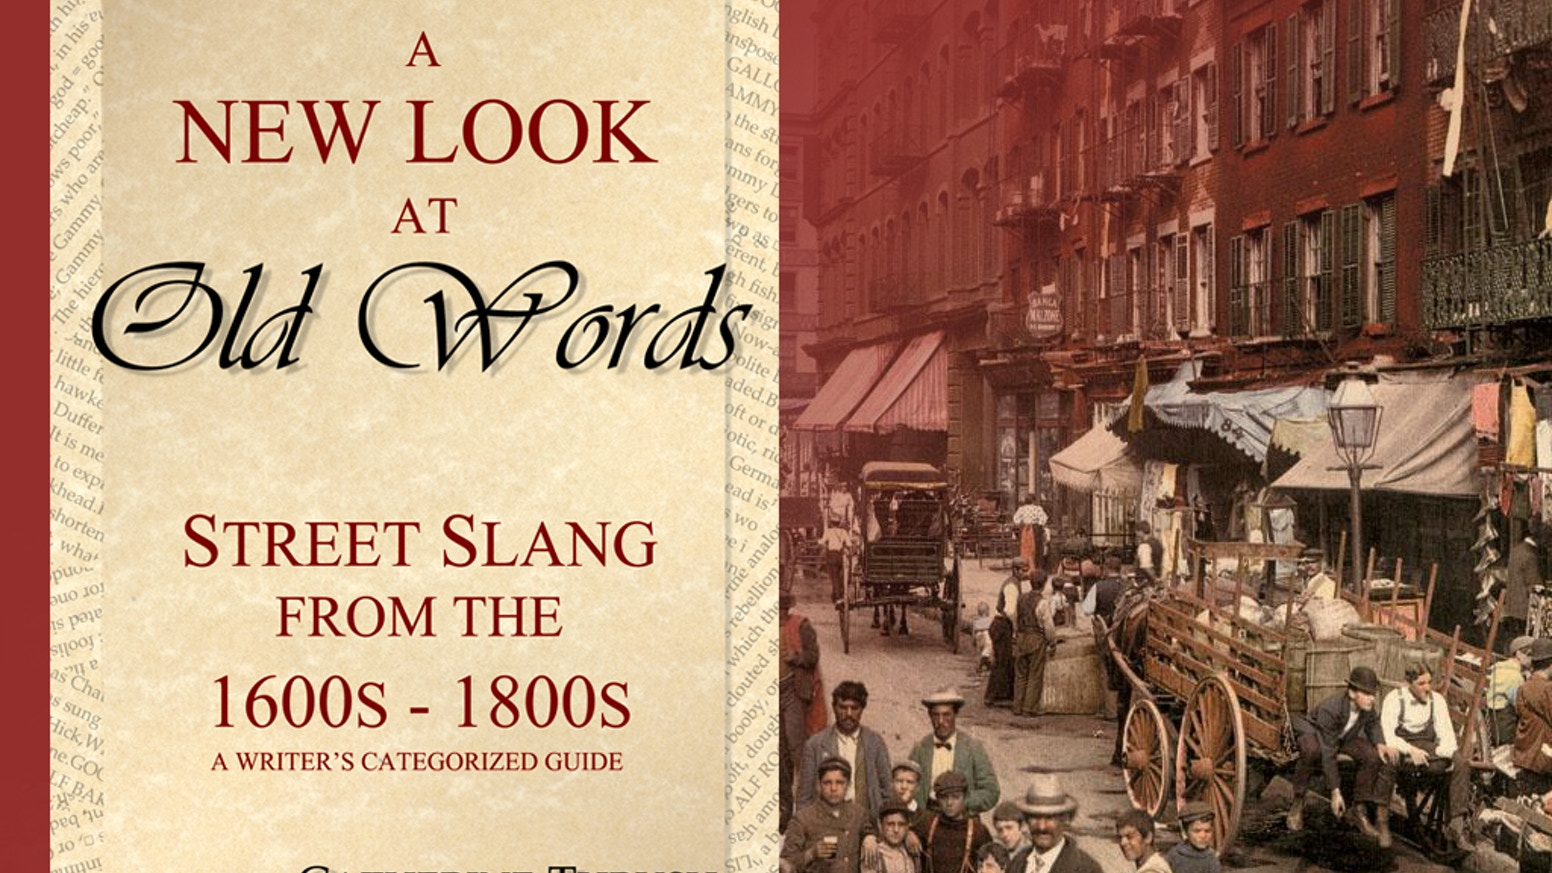 A writer's and word lover's categorized guide to street slang from the 1600s to the 1800s.